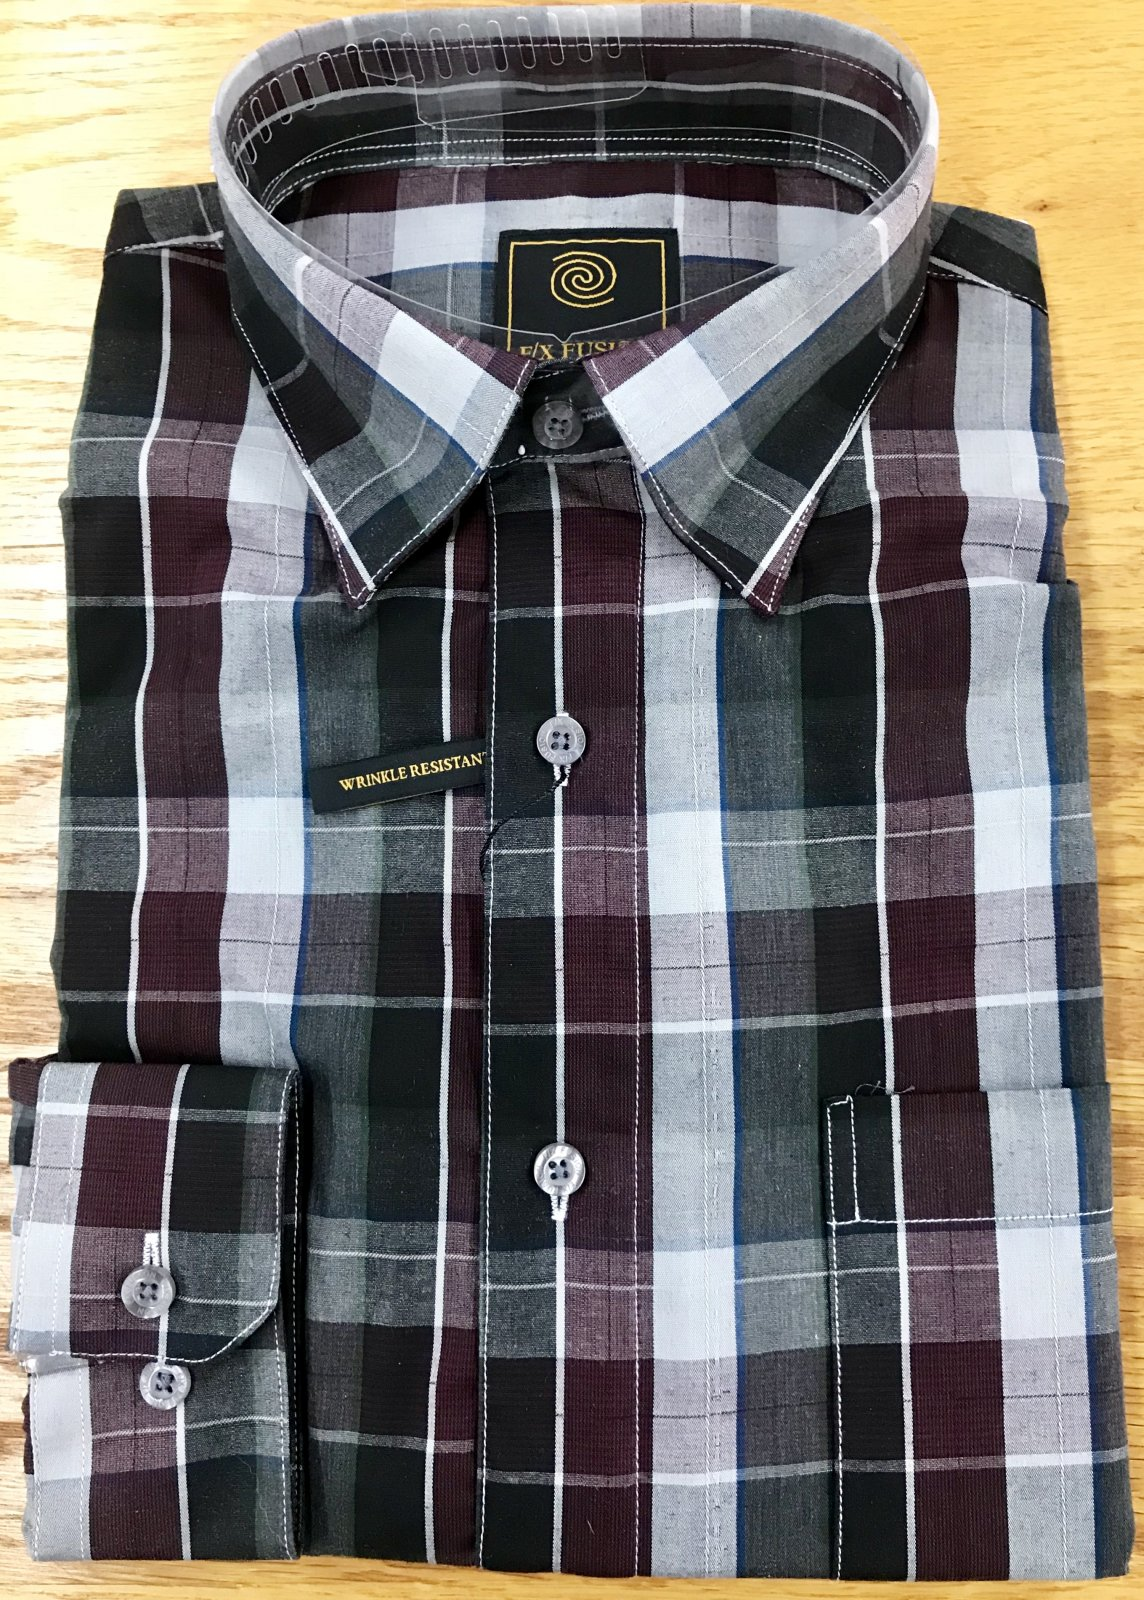 FX Fusion Burgundy Overplaid LS Shirt